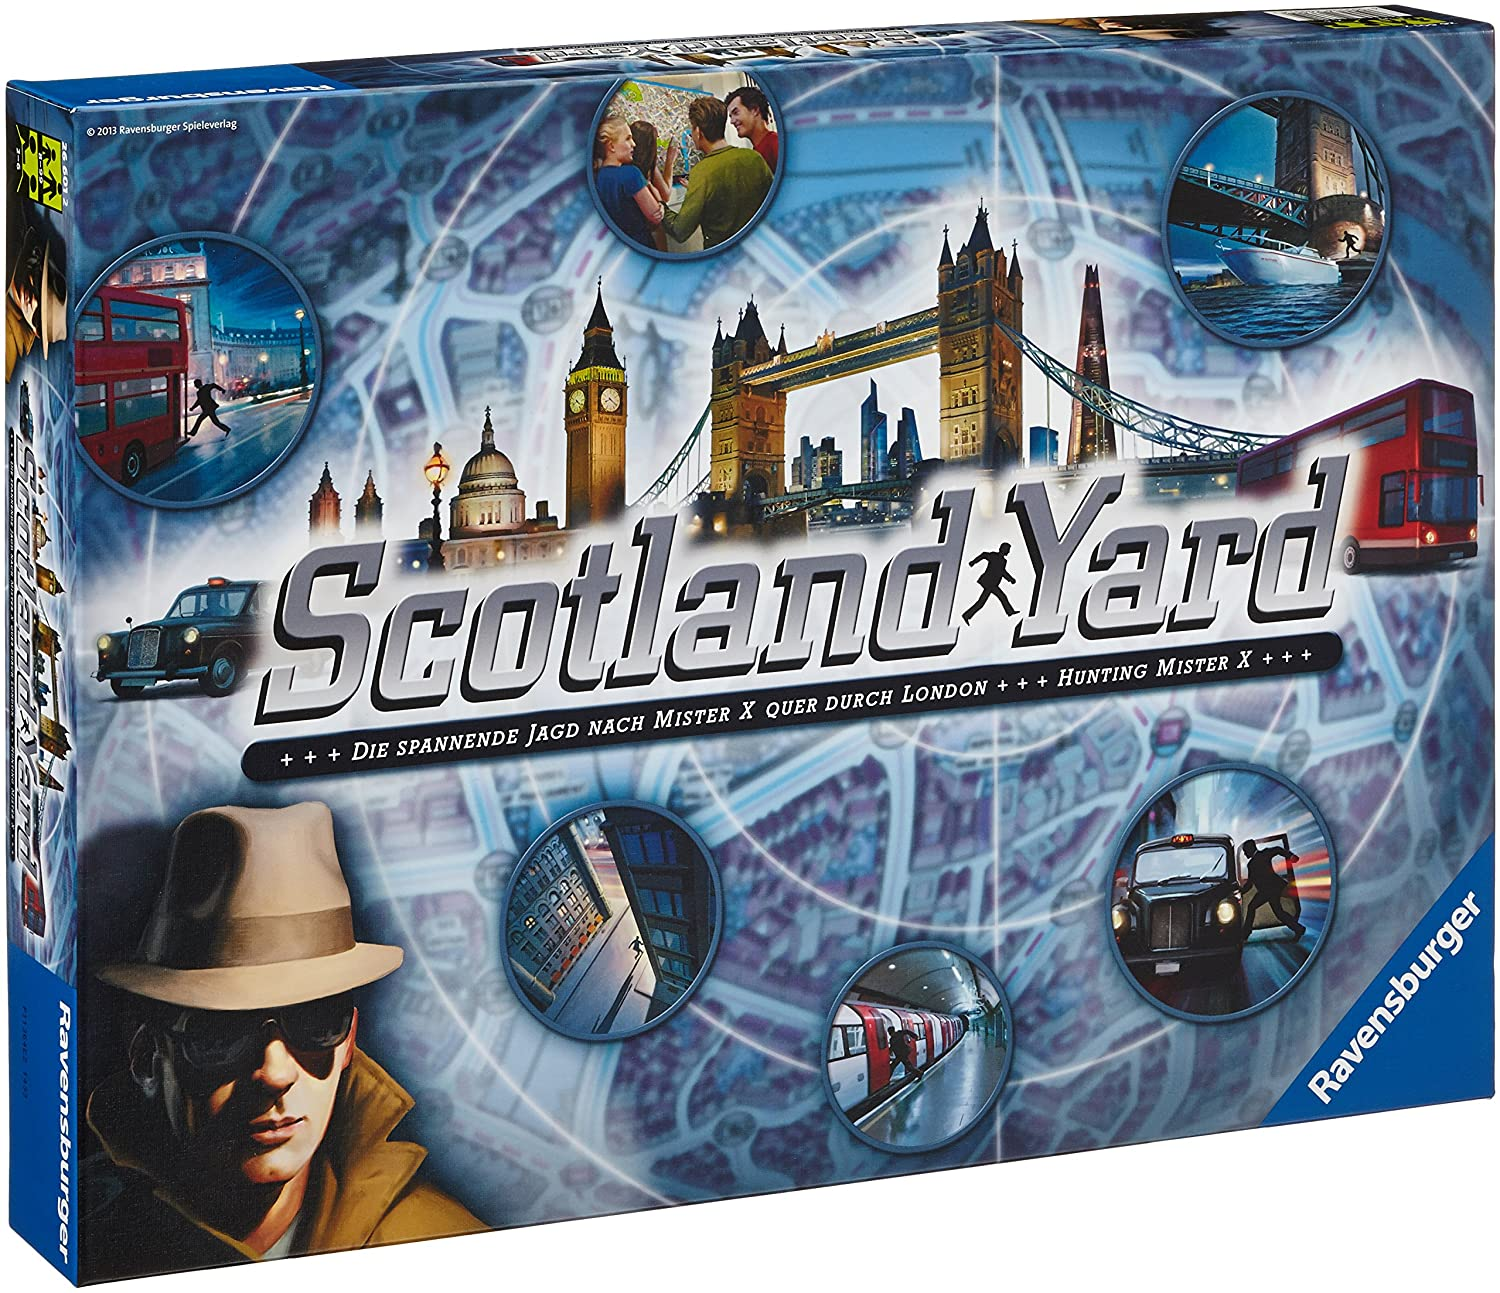 Ravensburger 26601 - Scotland Yard '13,